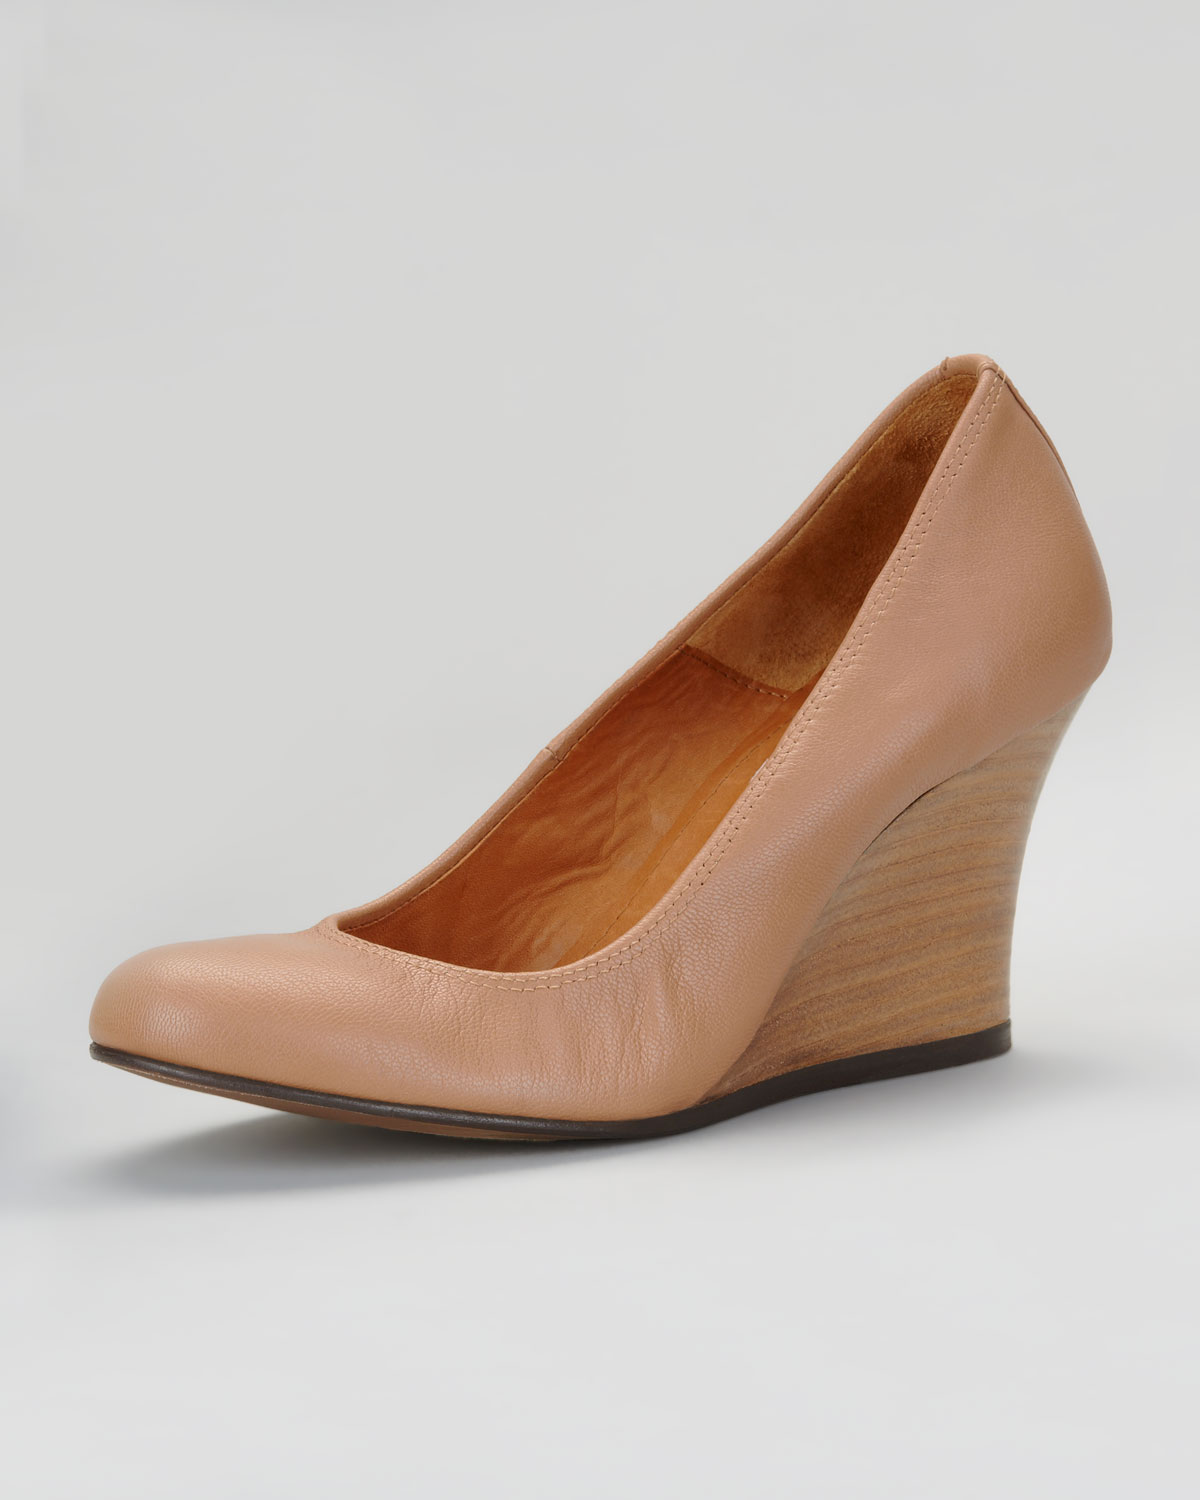 Lanvin Ballerina Wedge Pump Nude in Natural | Lyst